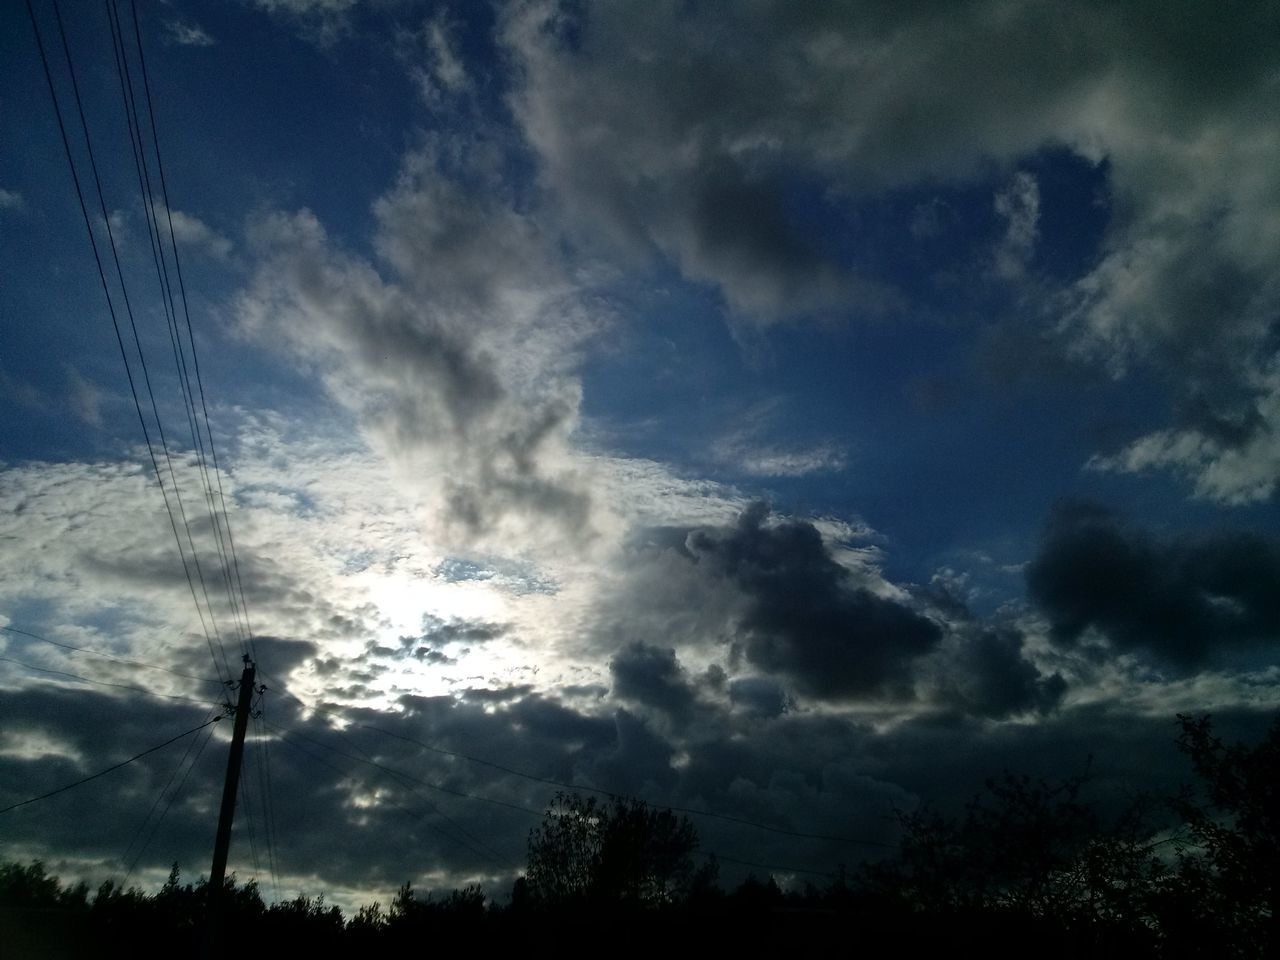 Beauty In Nature Cloud - Sky Day Electricity  Electricity Pylon Horizontal Low Angle View Nature No People Outdoors Power Supply Scenics Silhouette Sky